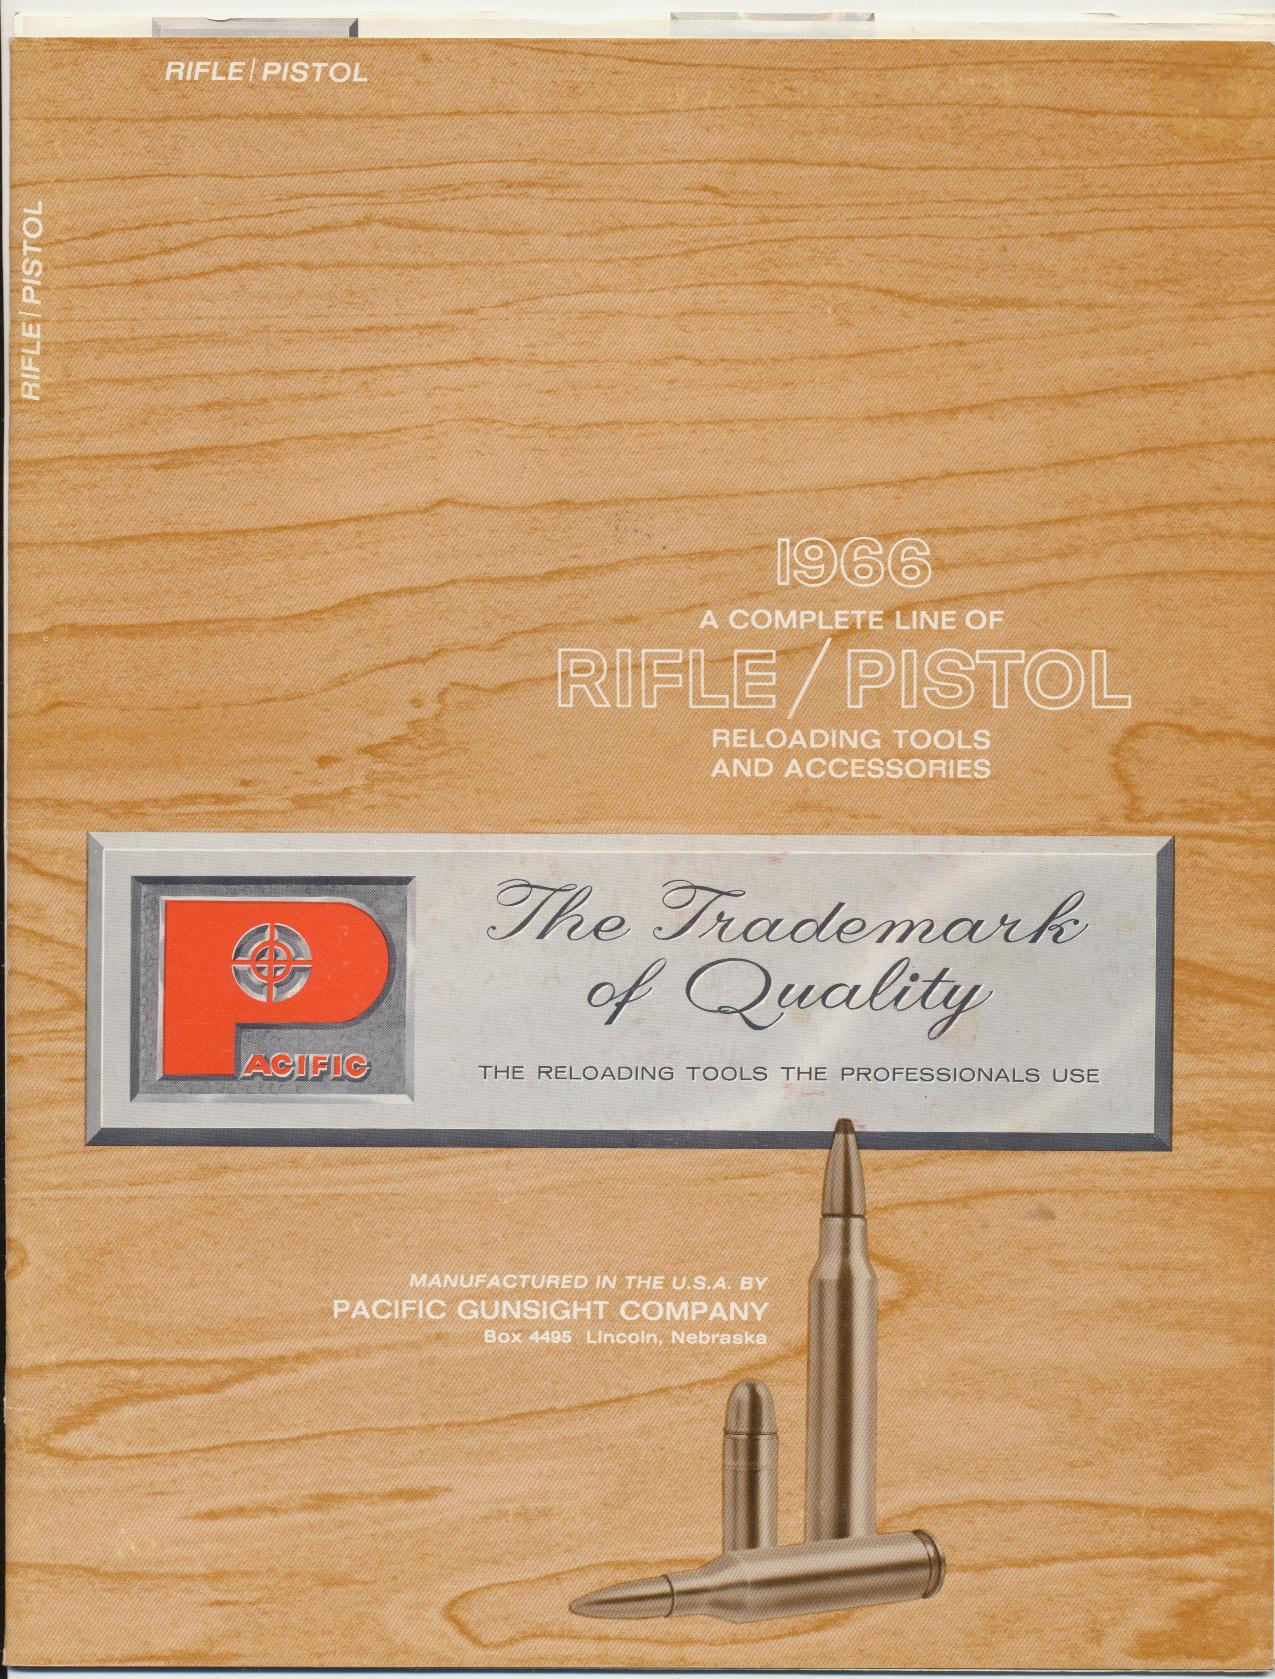 1966 Pacific Rifle/Pistol Reloading Tools Dealer Trade Catalog